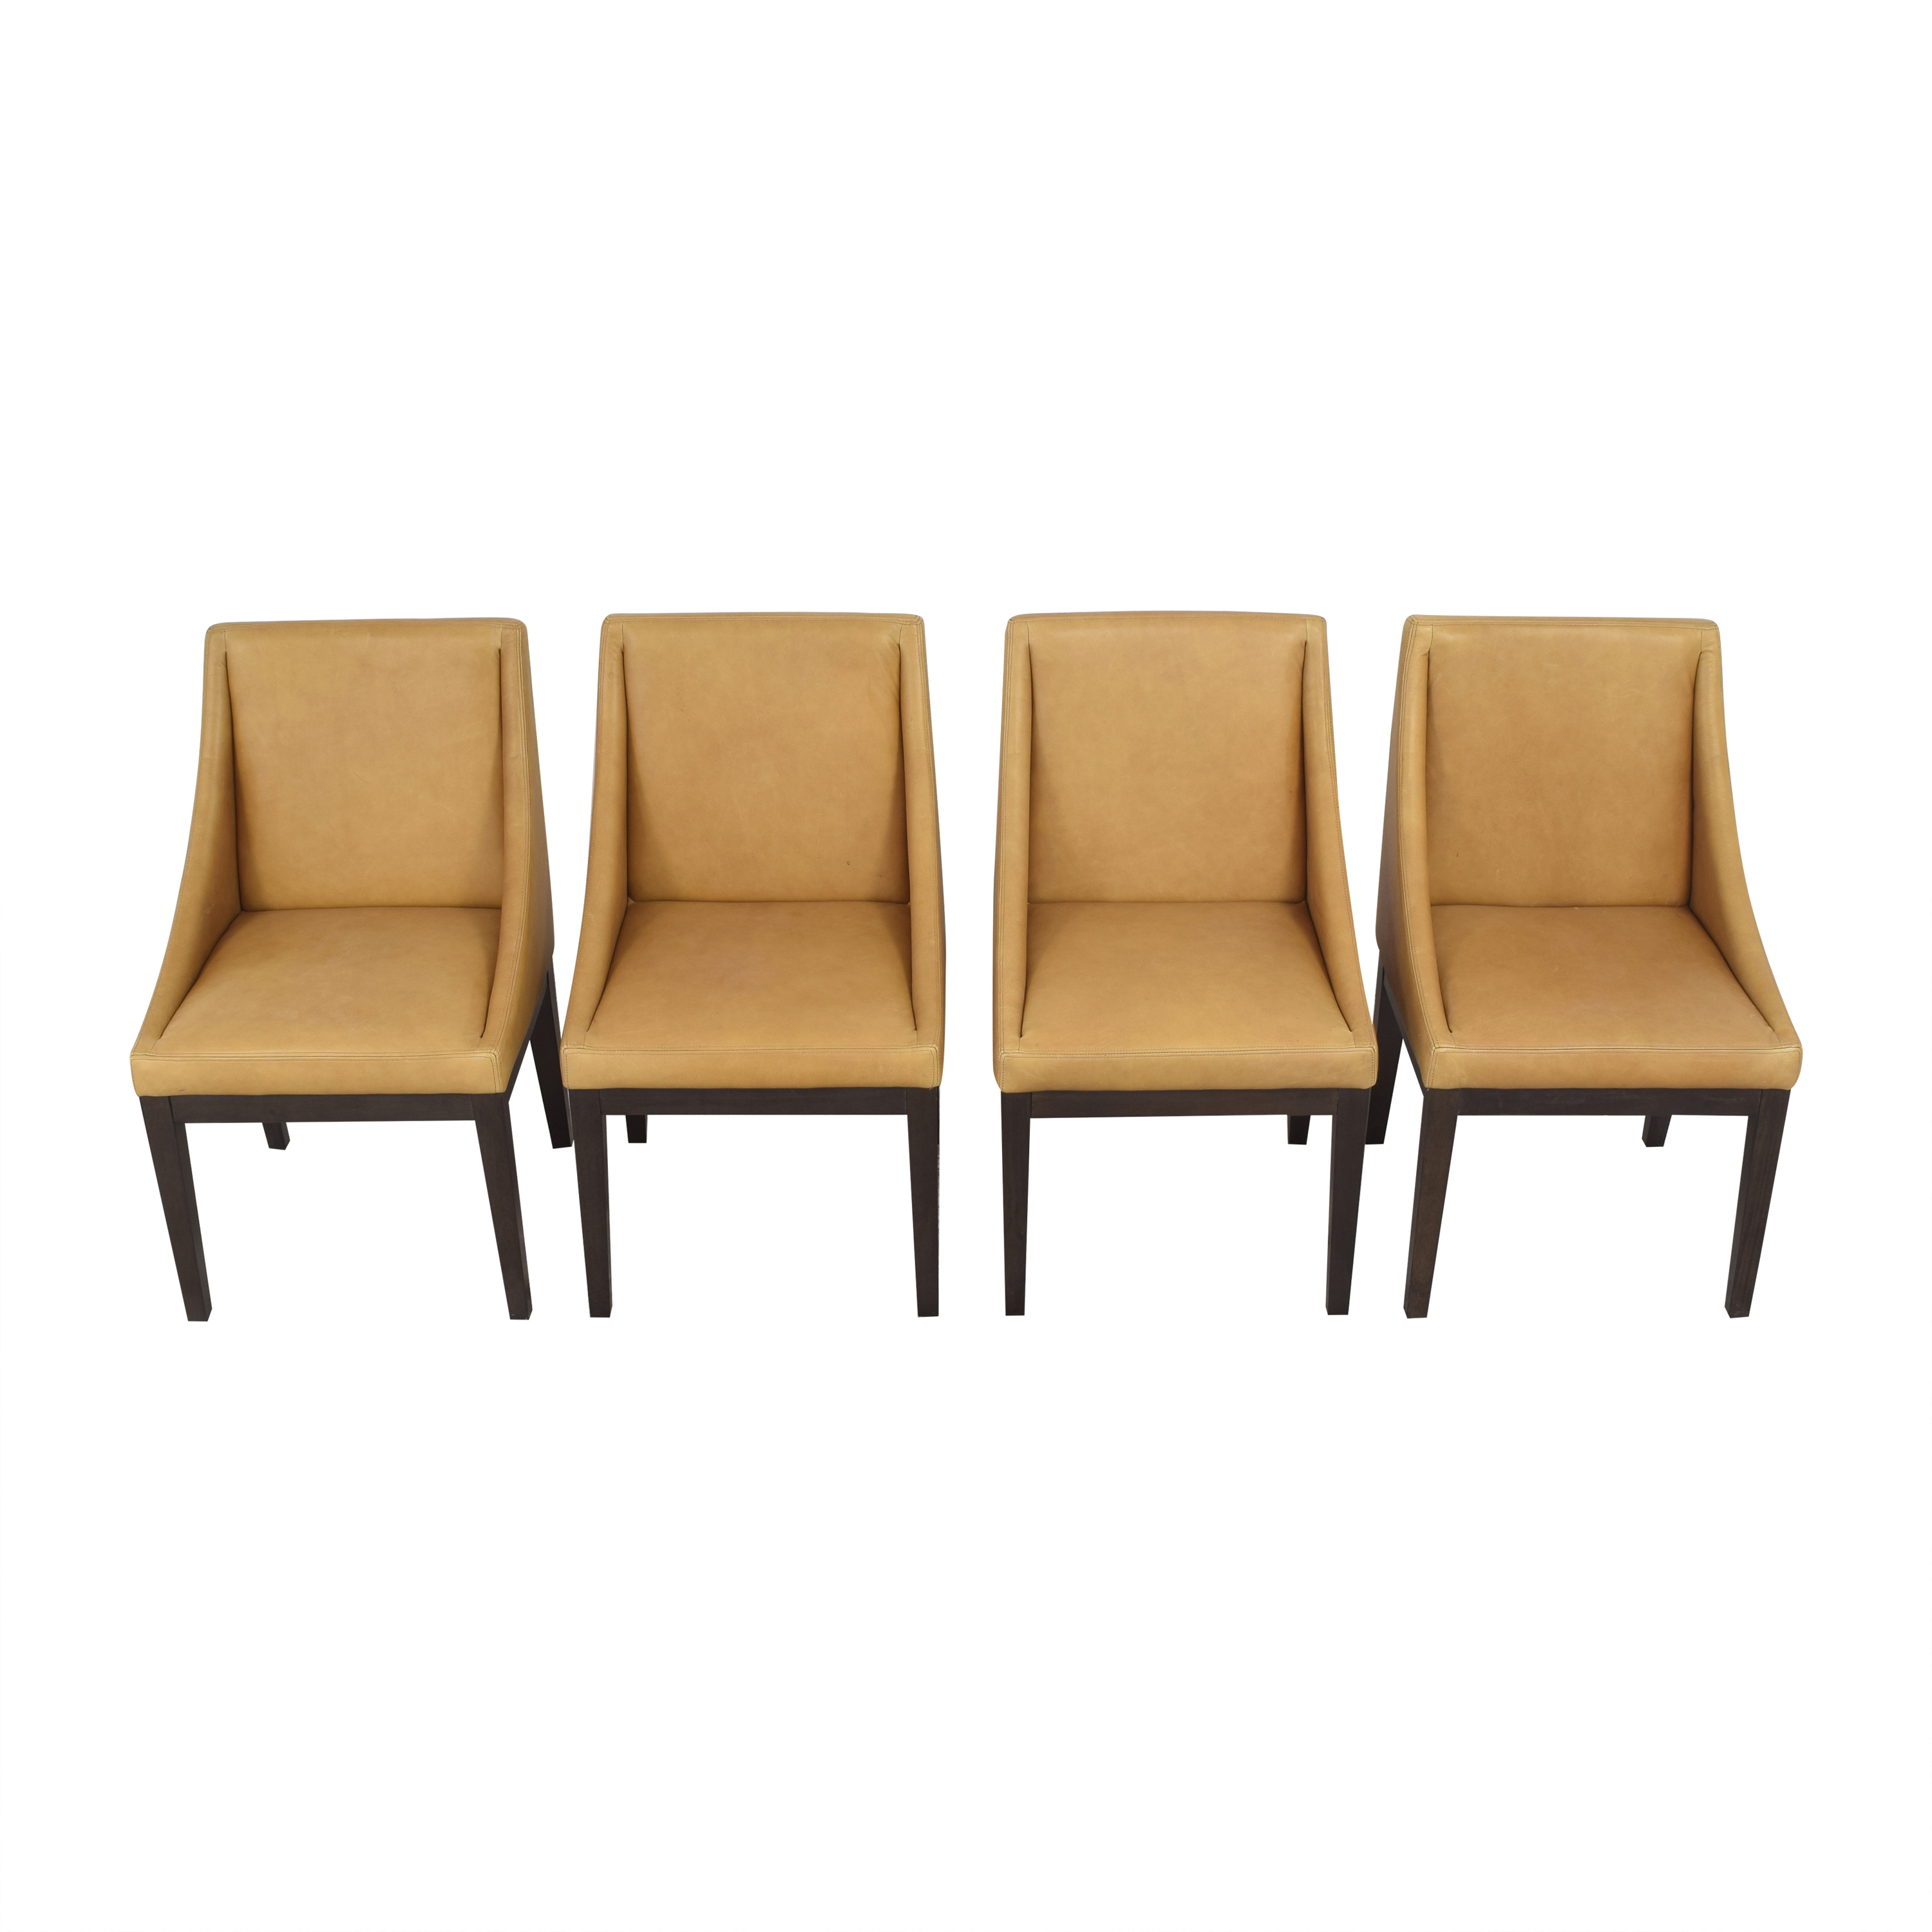 West Elm West Elm Curved Upholstered Chairs Dining Chairs